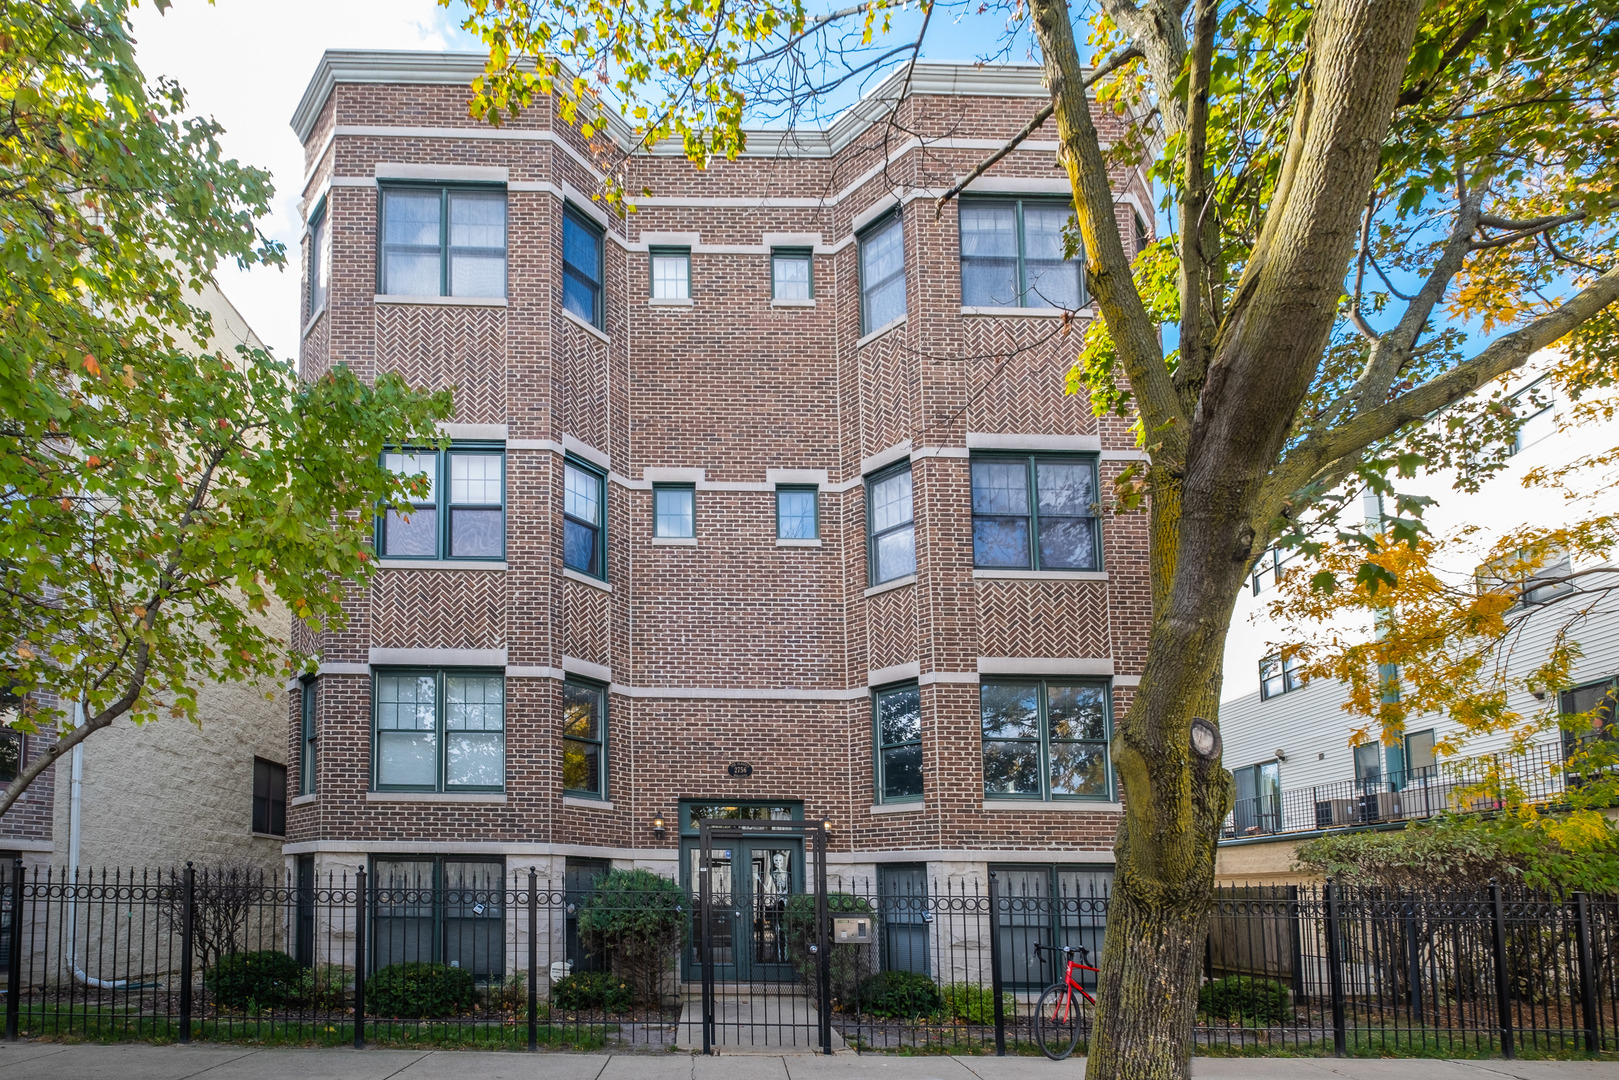 2756 WOLCOTT Avenue, Chicago, Illinois 60614, 2 Bedrooms Bedrooms, ,2 BathroomsBathrooms,Attached Single,For Sale,WOLCOTT,10910059